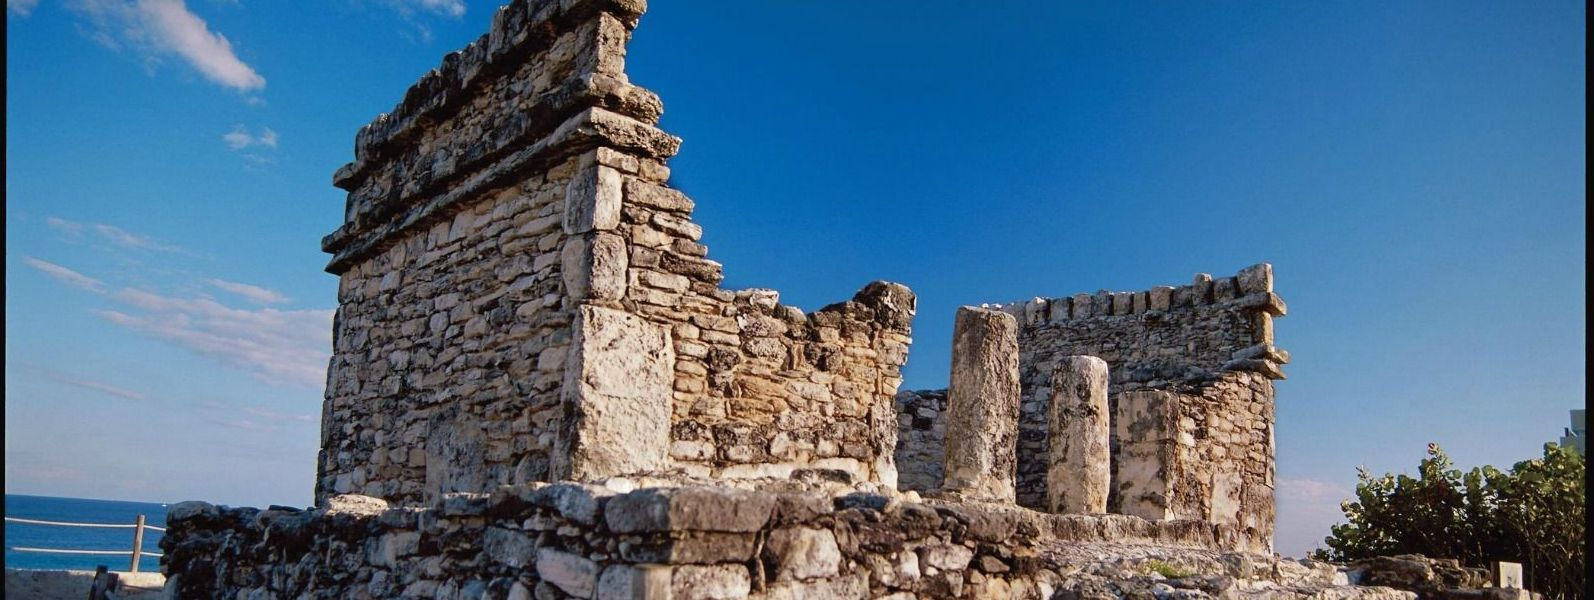 The Westin Lagunamar - Archeological conservation